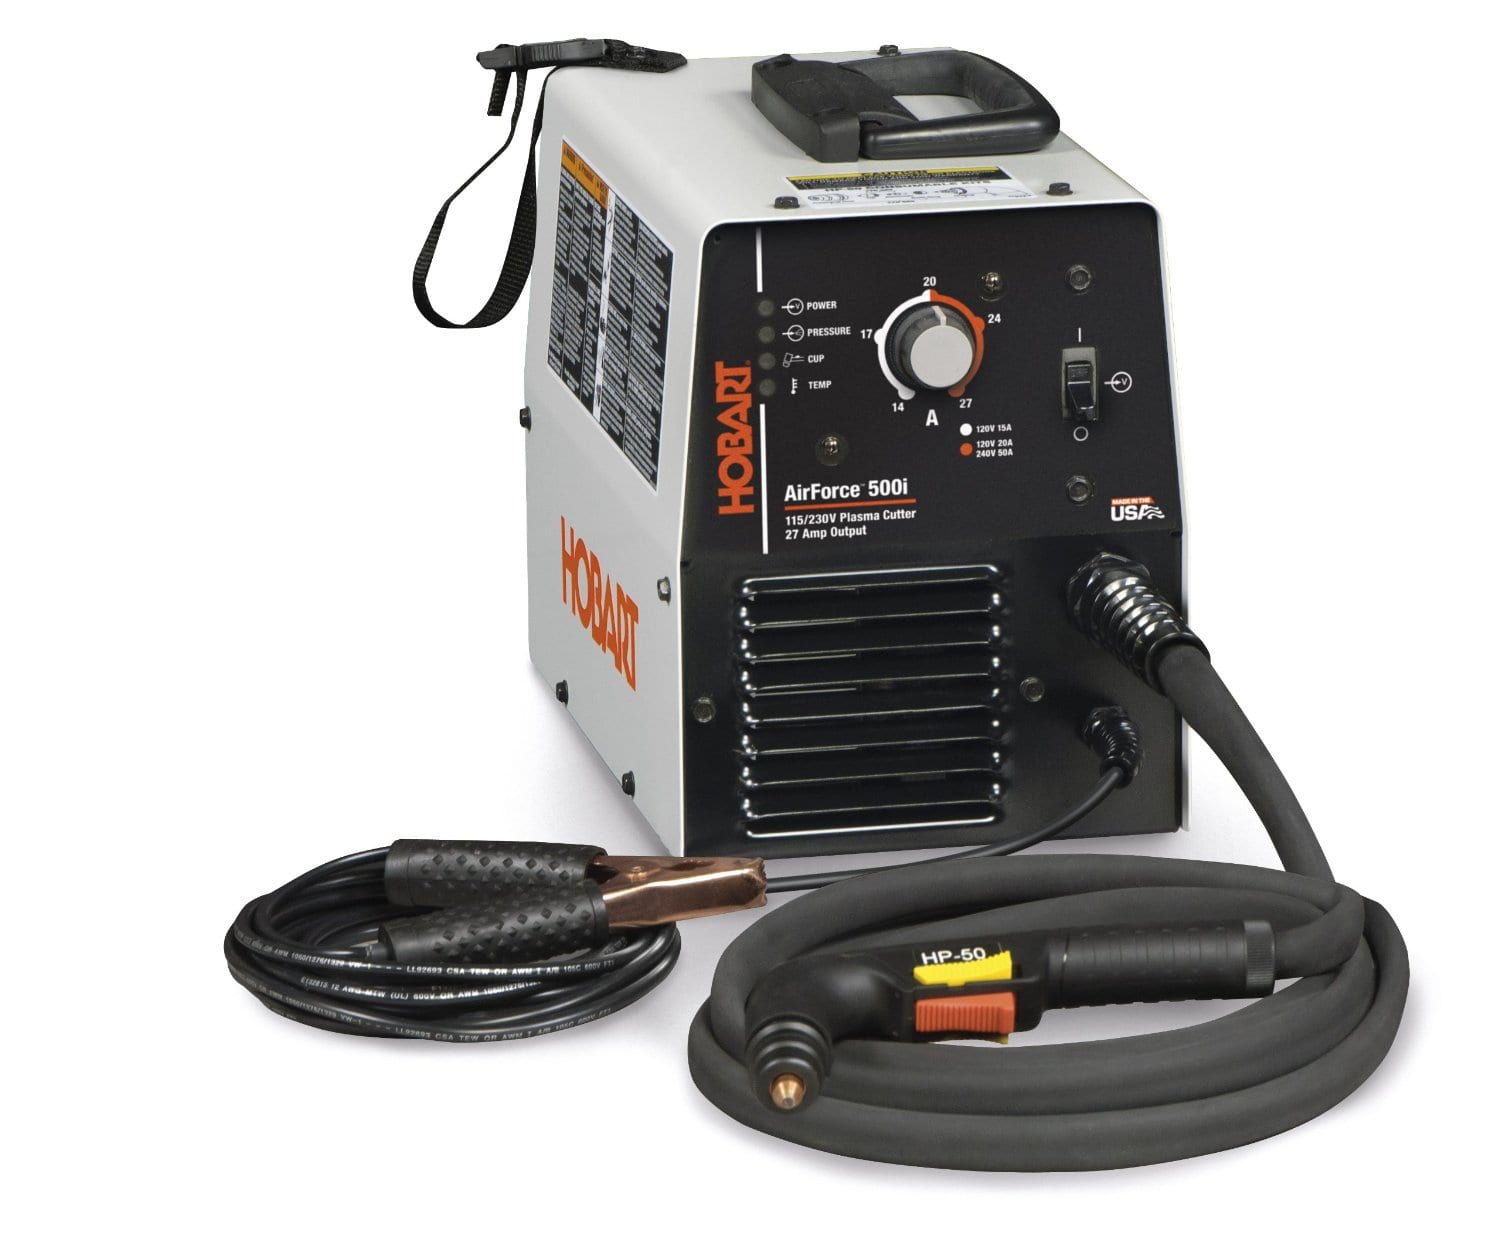 Hobart 500548 Airforce 500i 115-230 Volt Plasma Cutter - Review